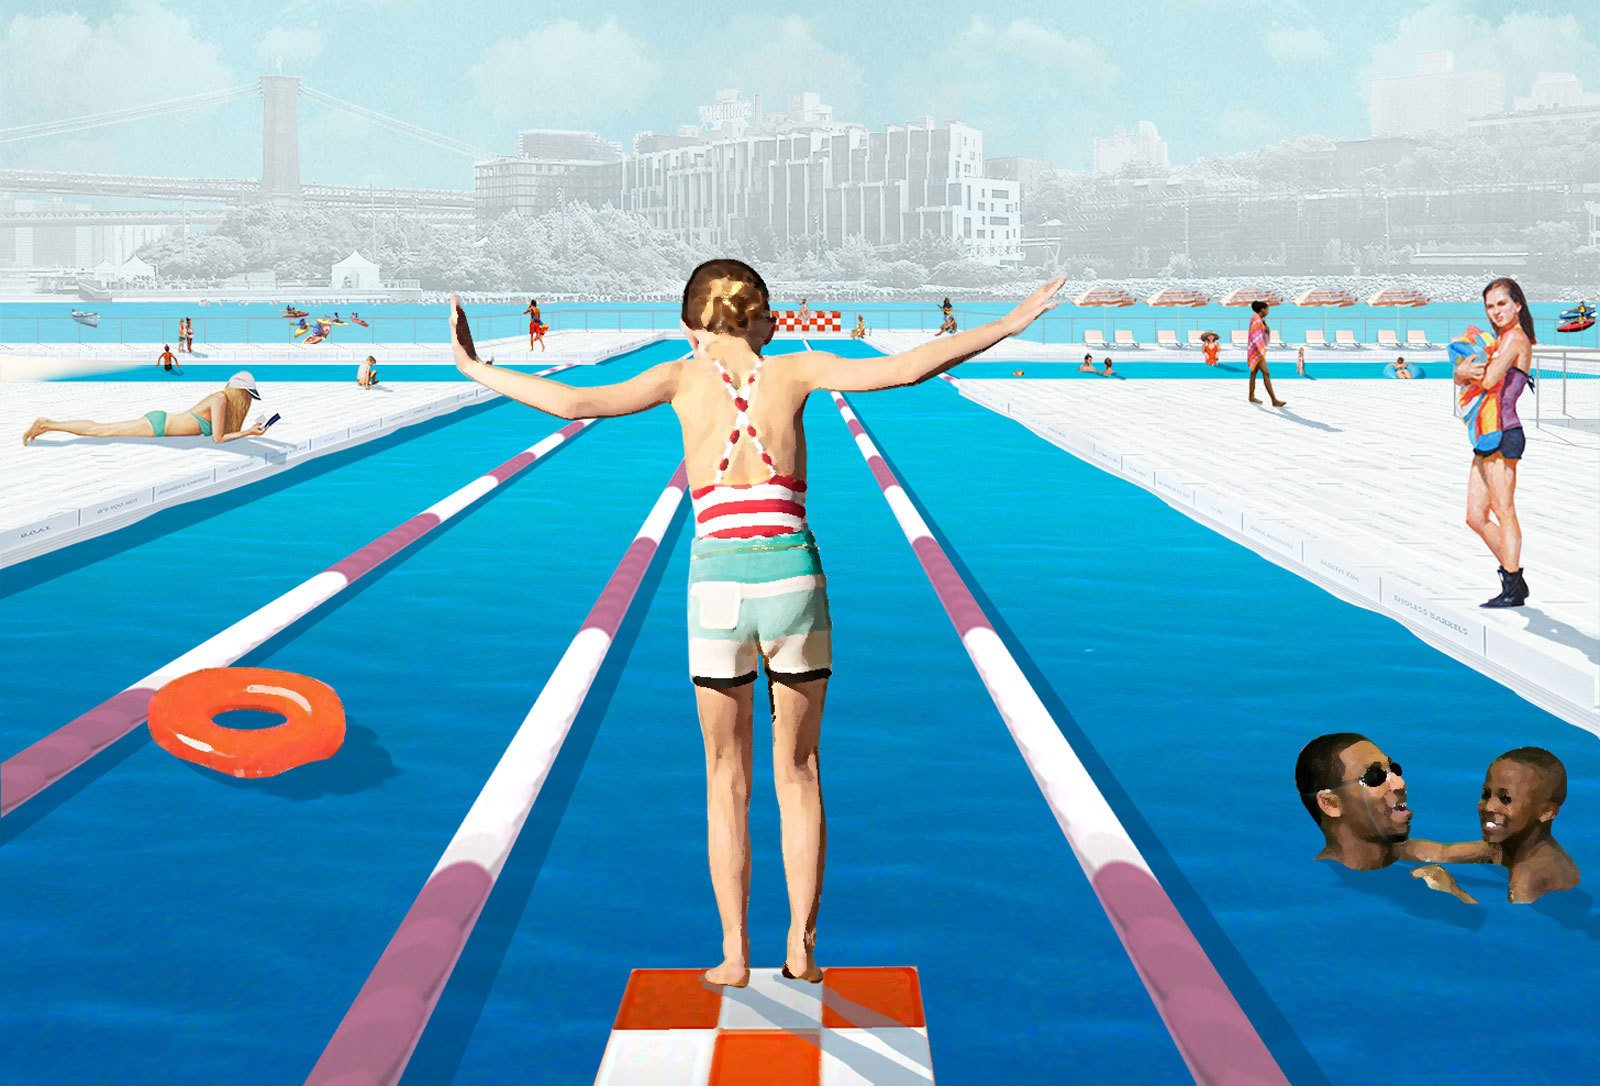 Rendering: Family New York, Courtesy of Friends of + POOL